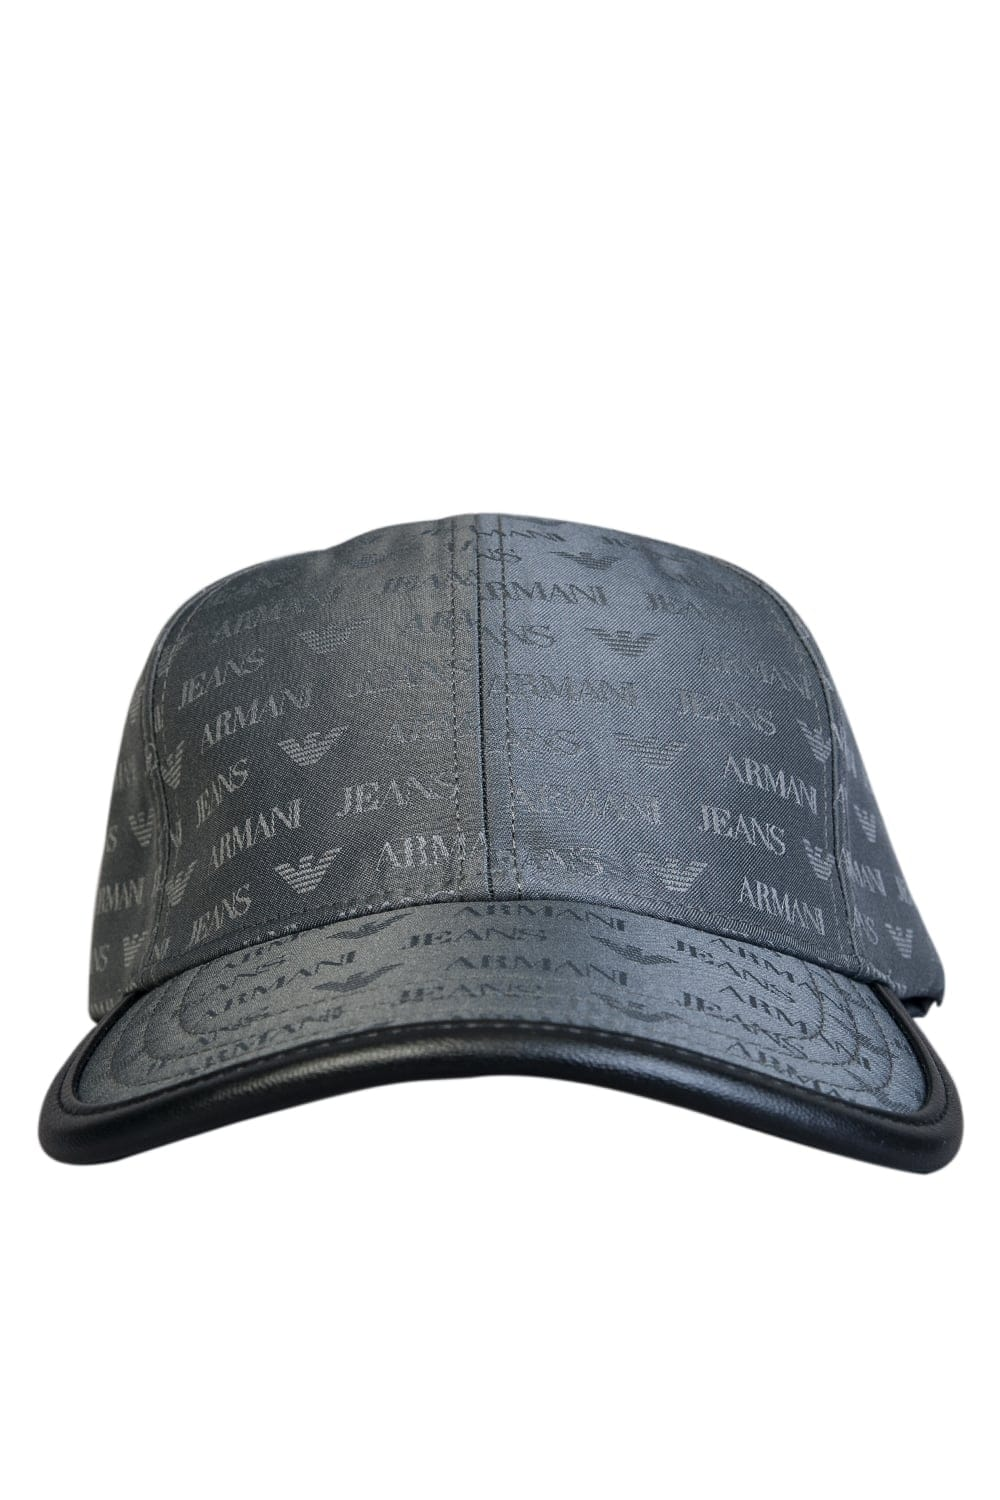 Armani Jeans Hat 934500CC993 - Accessories from Sage Clothing UK 3c0ec368c79